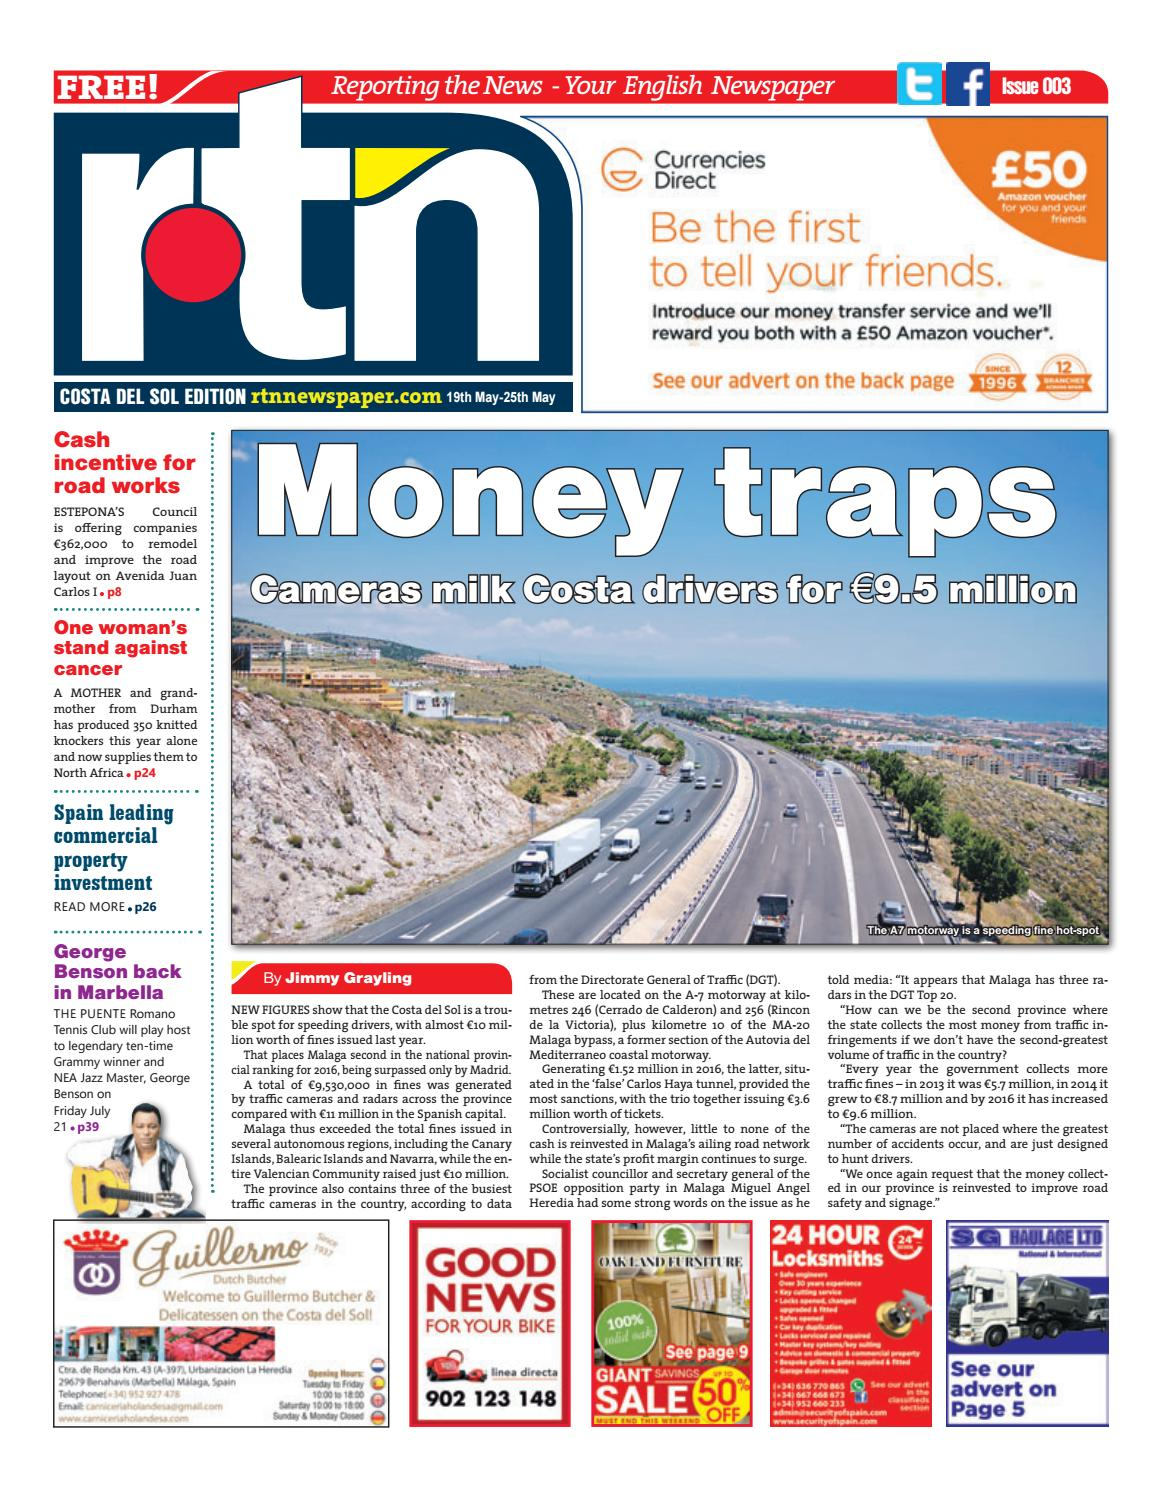 Camino De Ronda Granada Wikipedia Rtn Newspaper Costa Del Sol 19 25 May 2017 Issue 003 By Euro